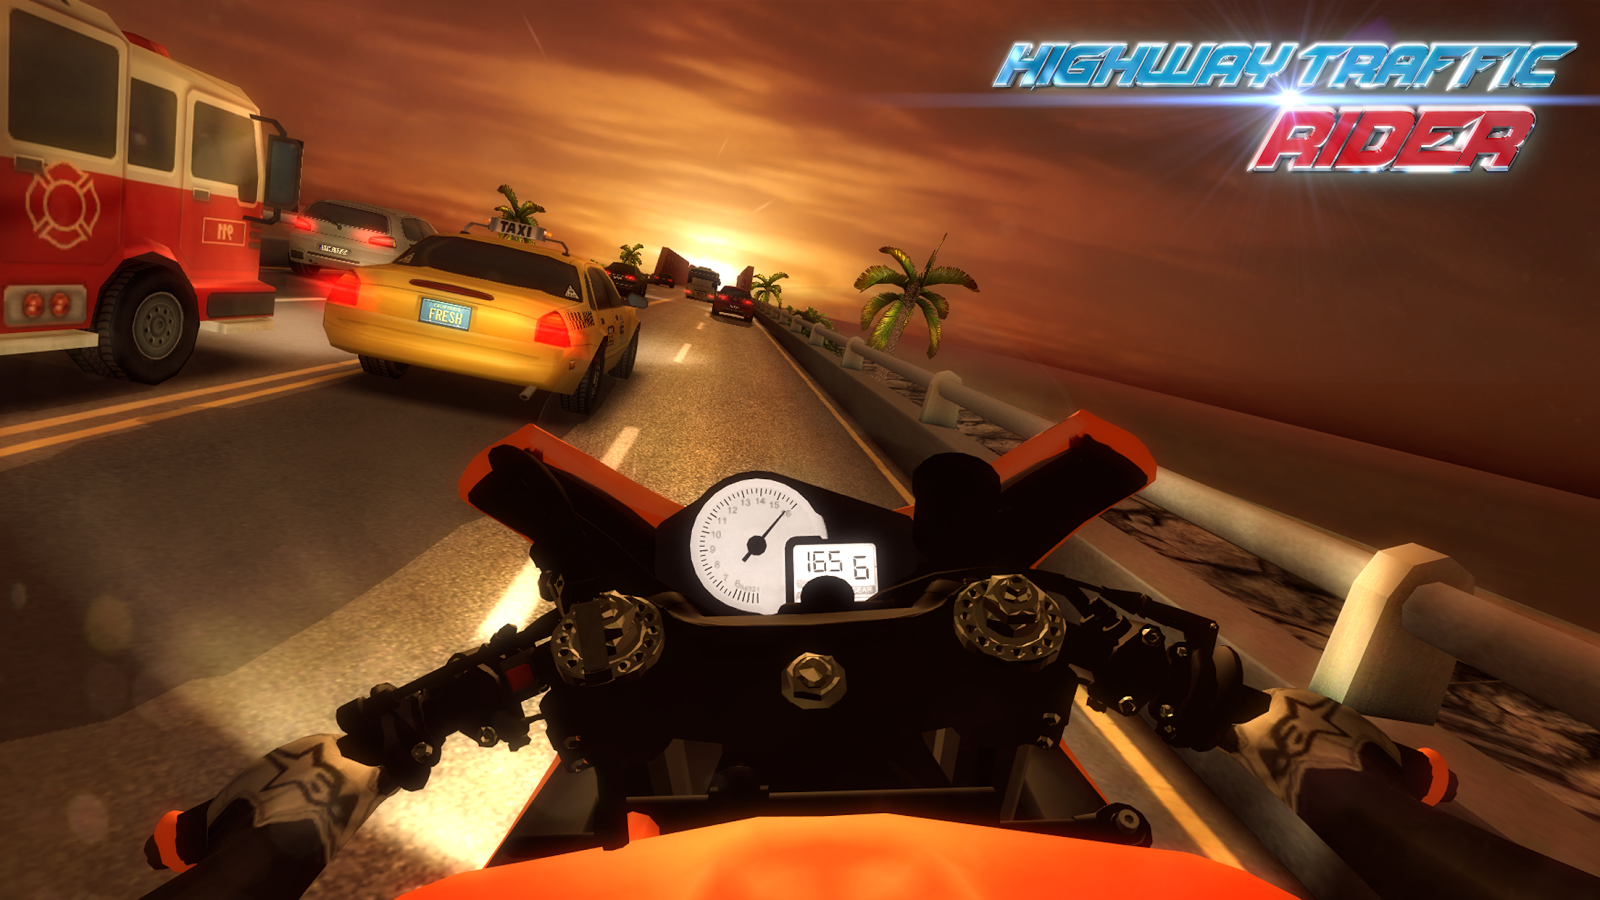 Highway Traffic Rider Screenshot 6